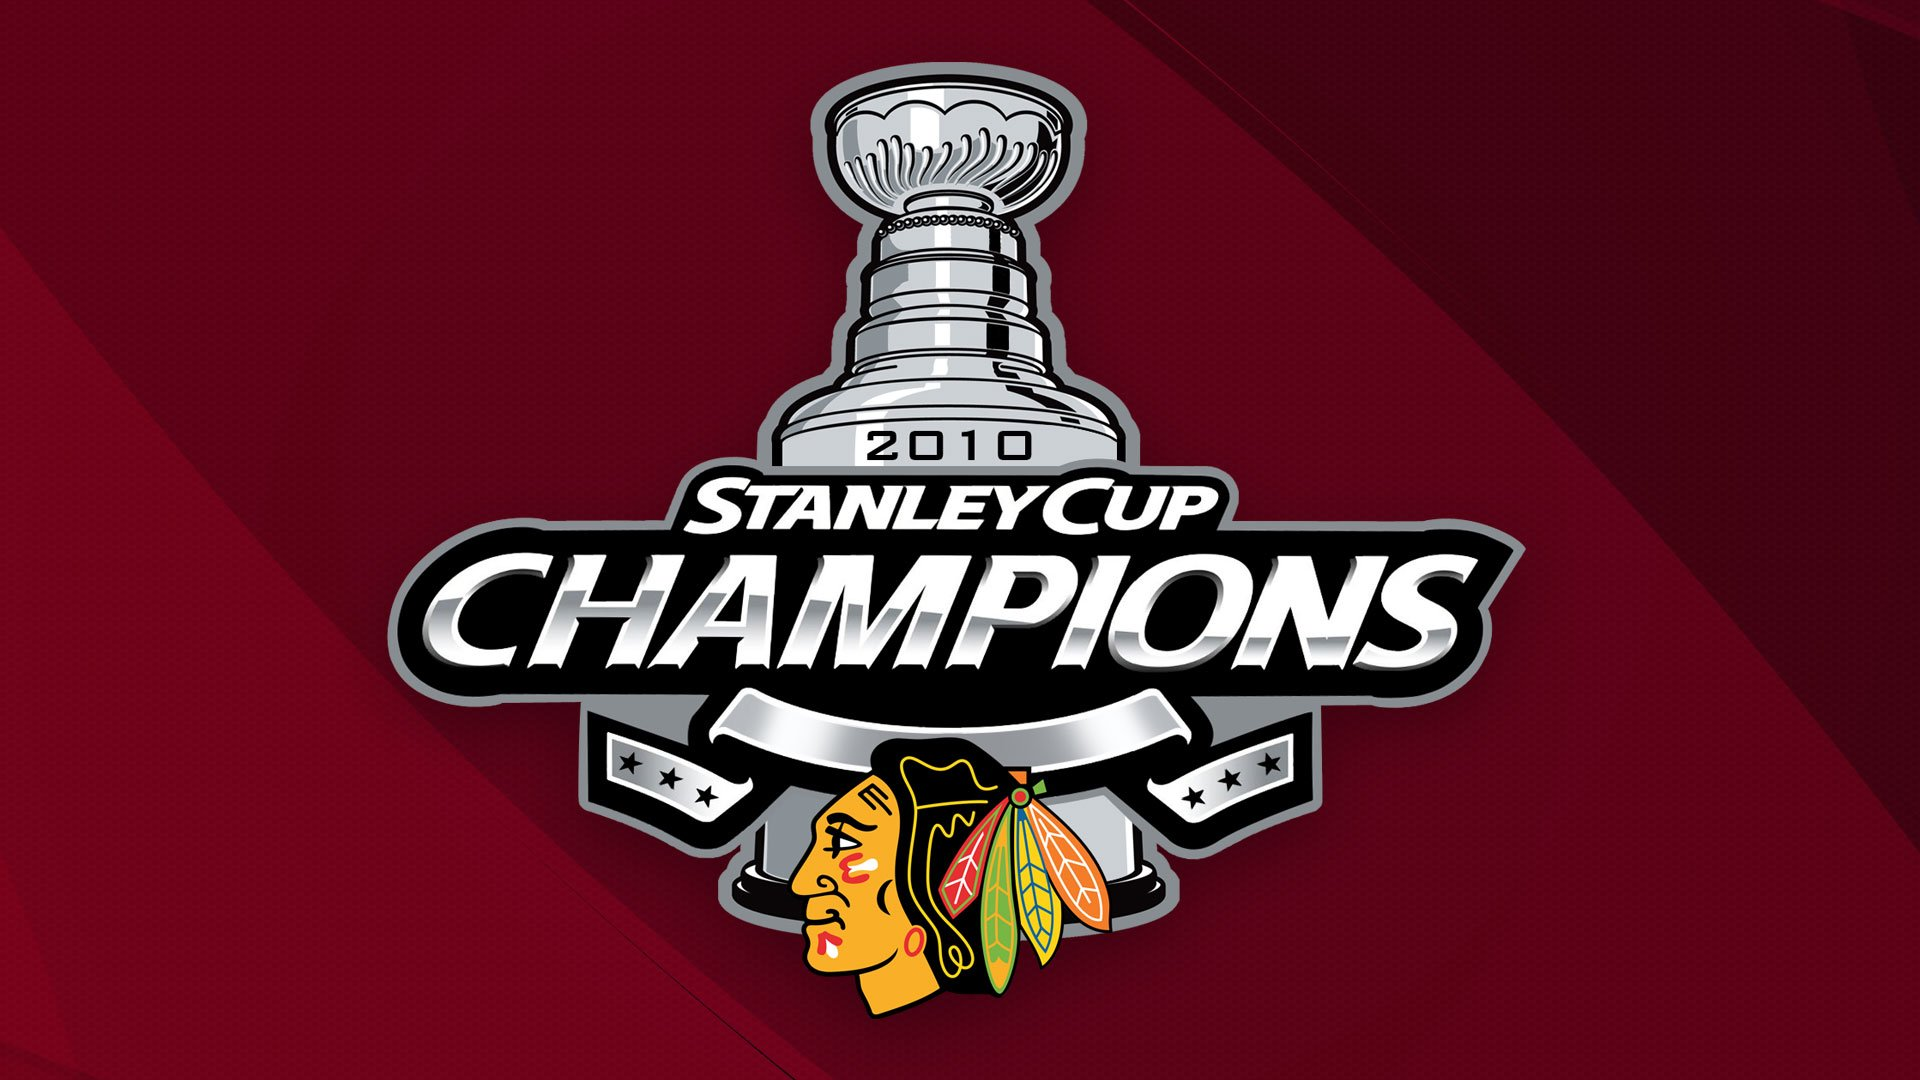 Chicago Blackhawks Wallpapers For IPhone Group 1920x1080